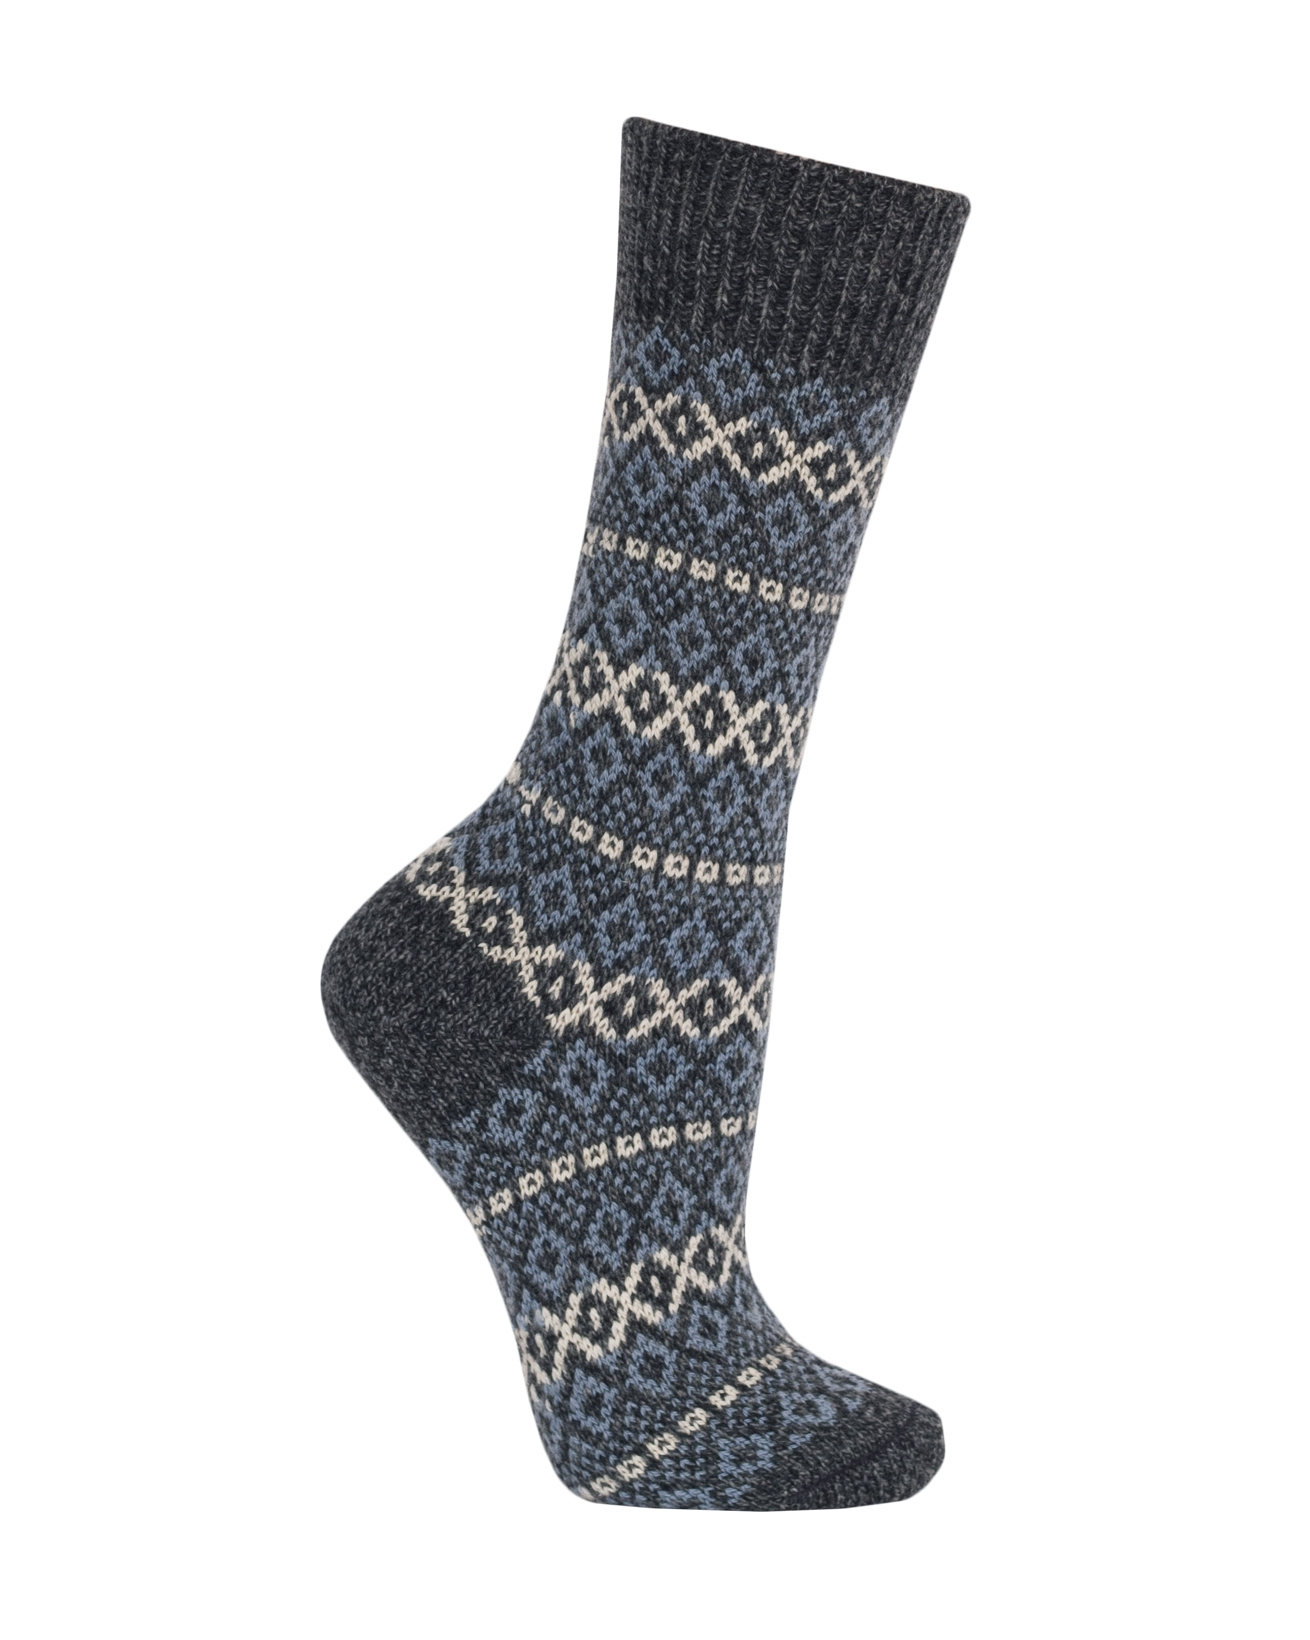 6859_ladies_fairisle_socks_charcoal marl.jpg